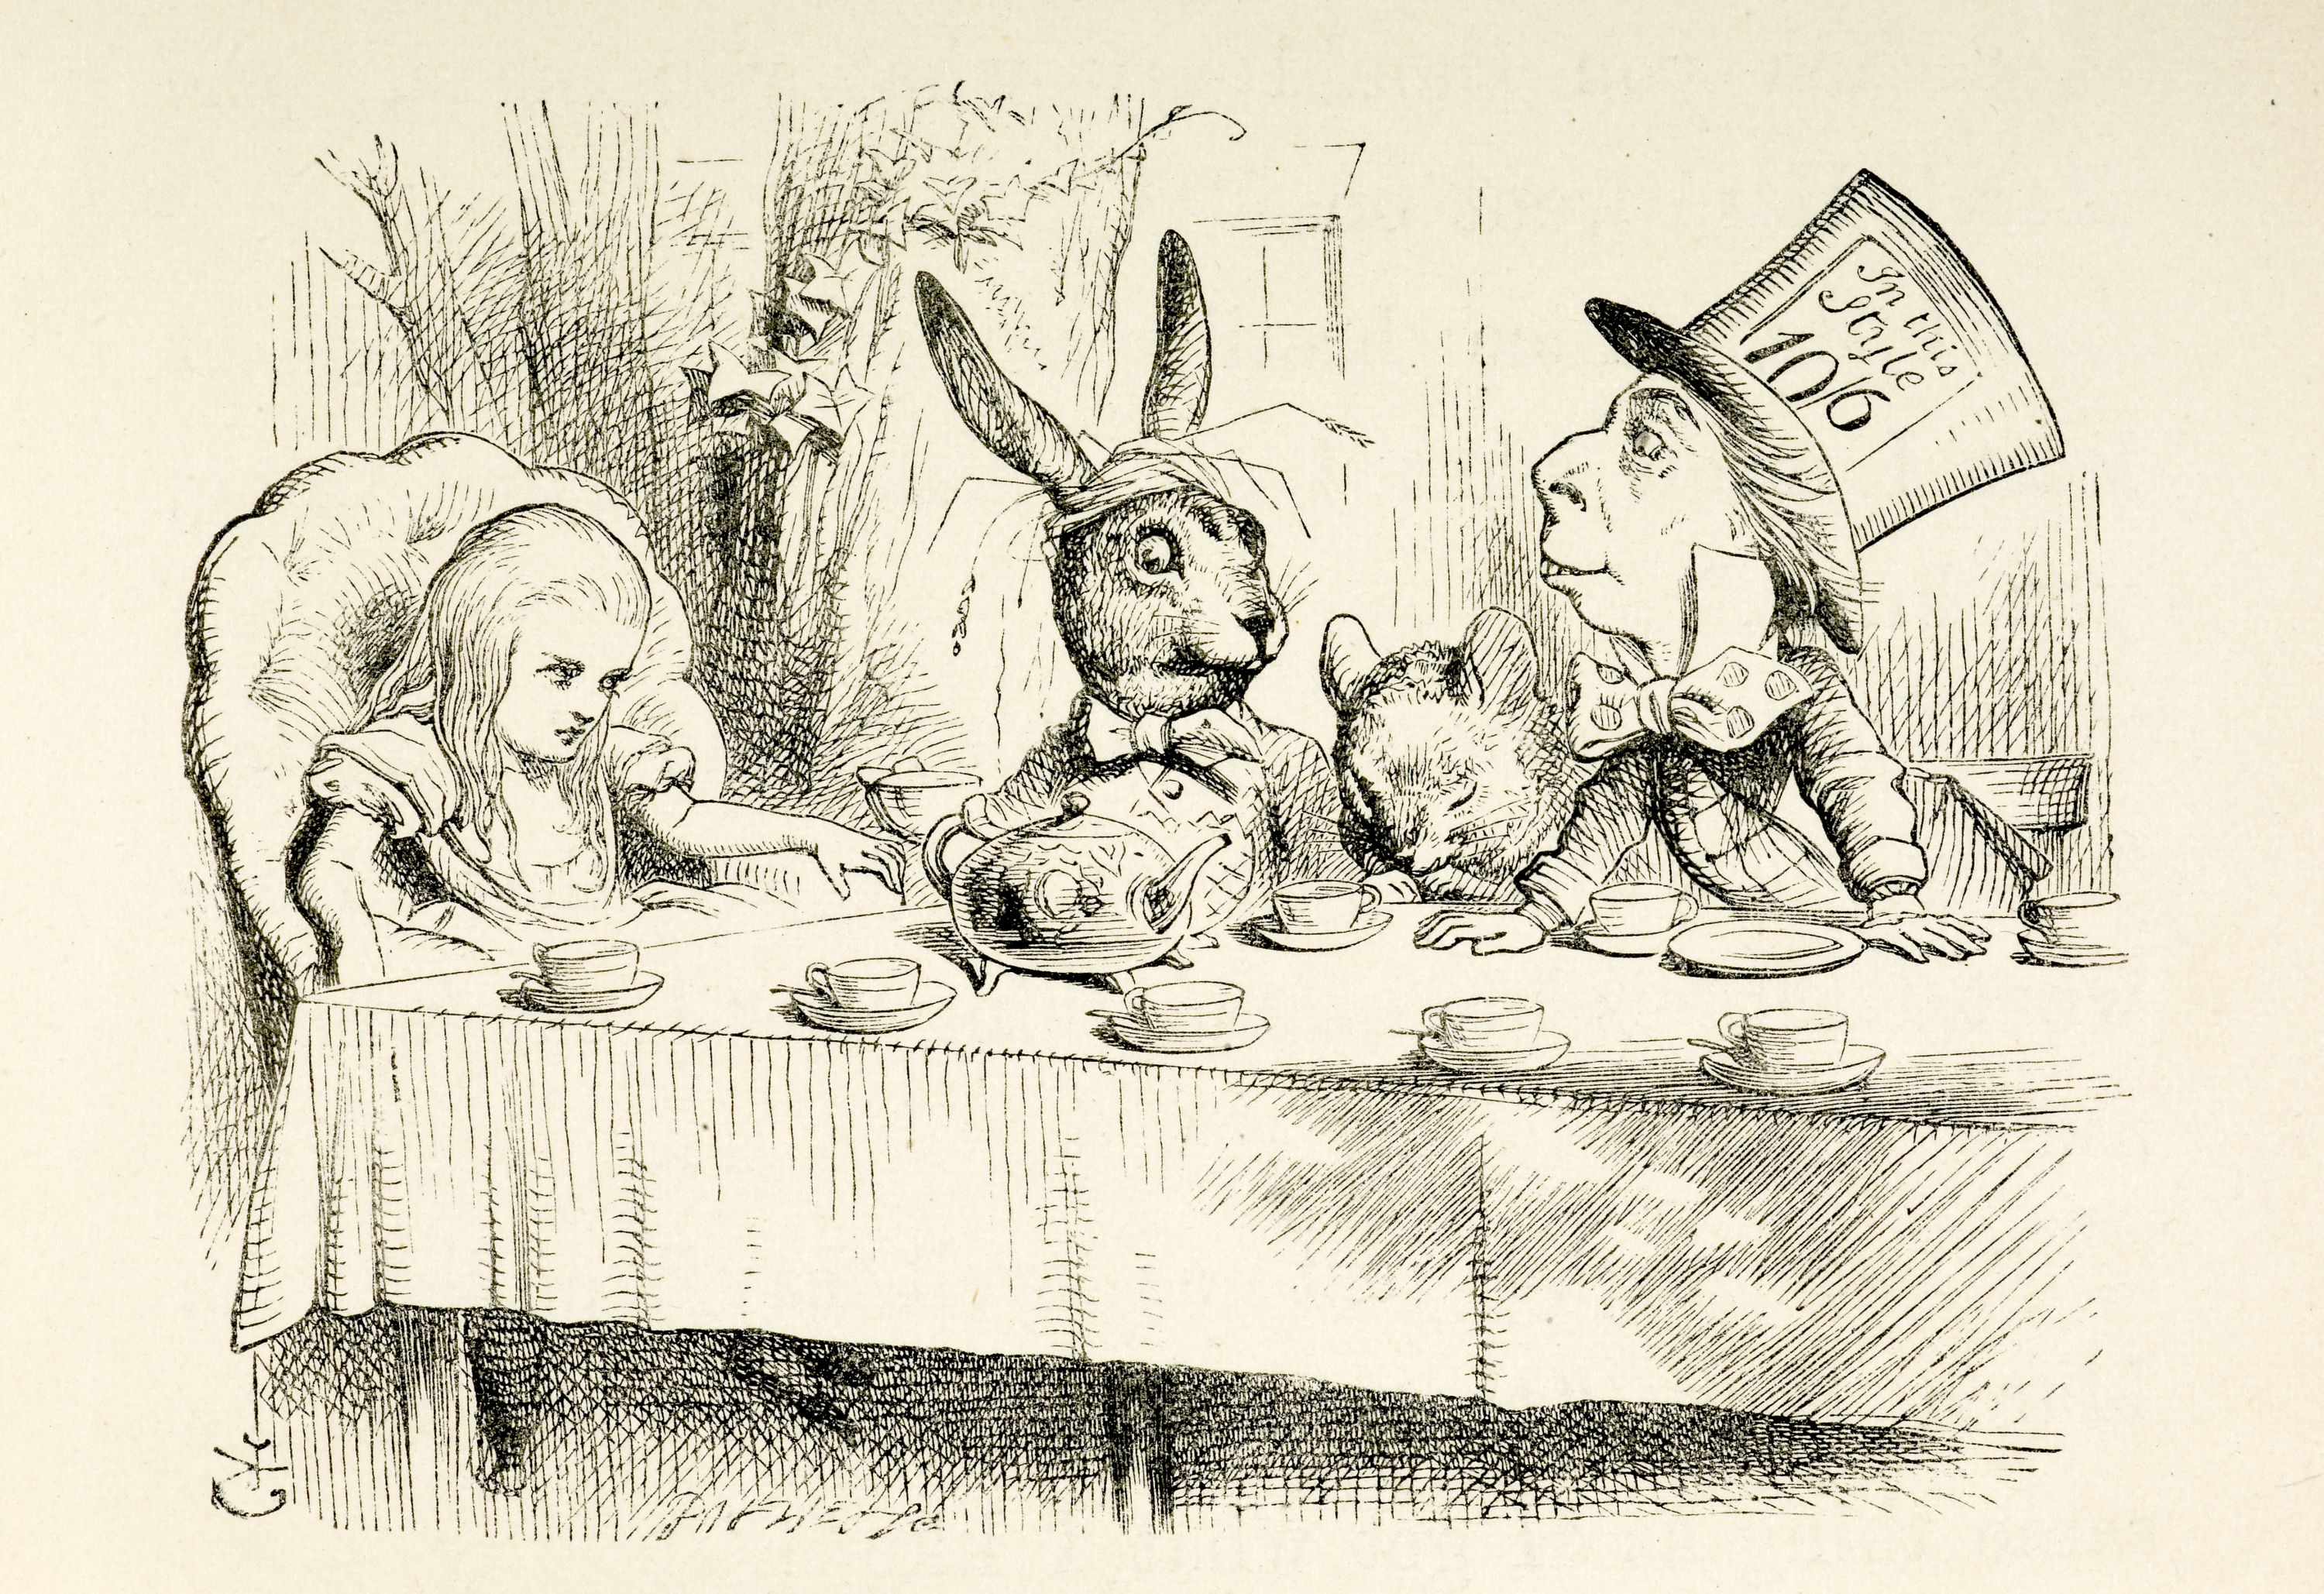 Artwork by John Tenniel from the first edition of Alice's Adventures in Wonderland (1865) Photography courtesy of the British Library